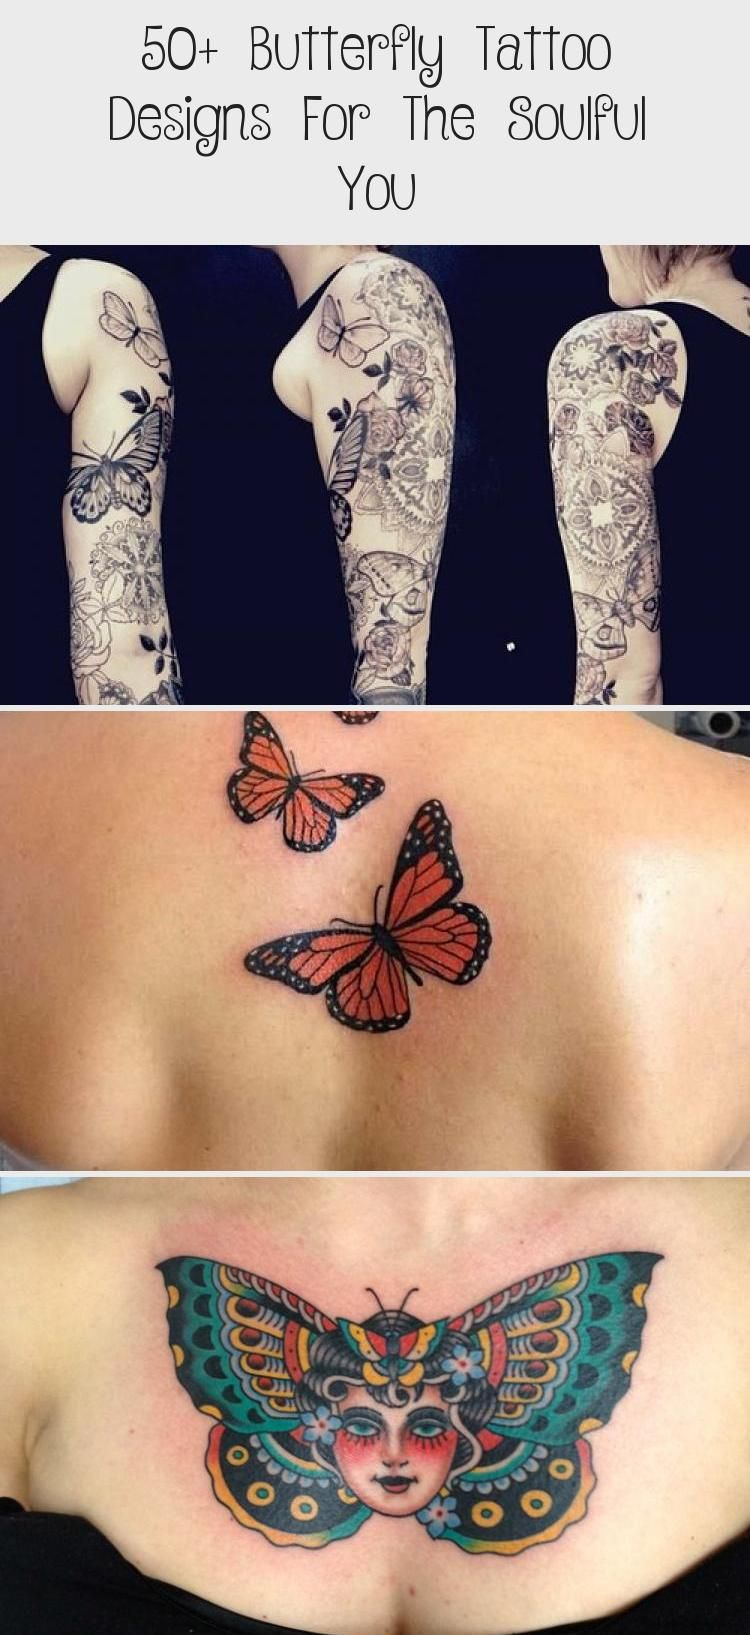 50+ Butterfly Tattoo Designs For The Soulful You - Tattoos and Body Art